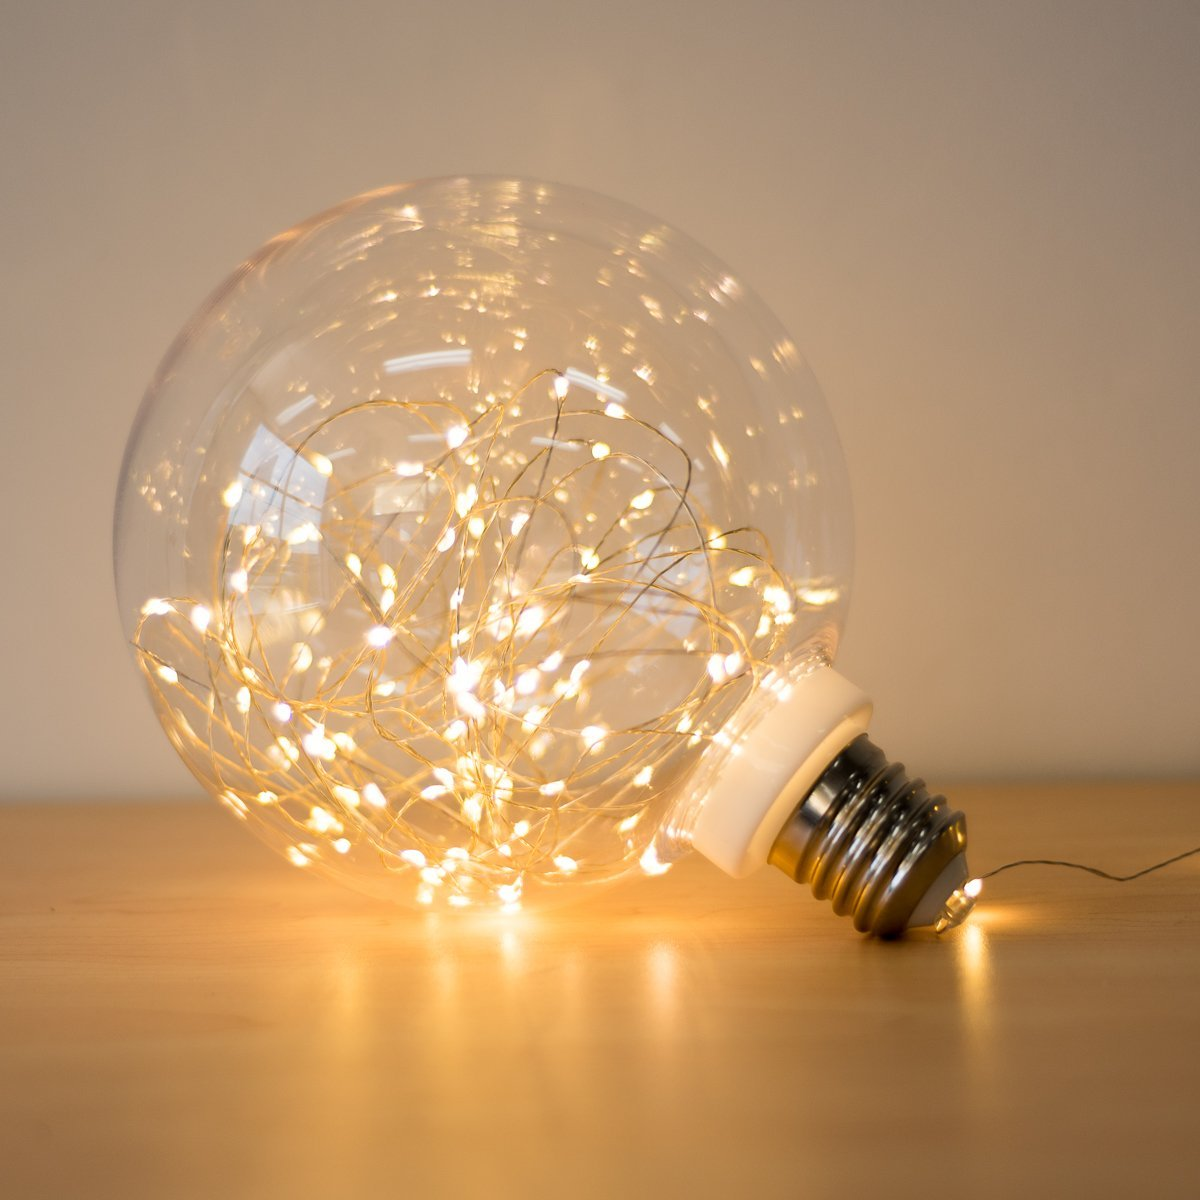 Large LED Light Bulb Globe USB String Lights